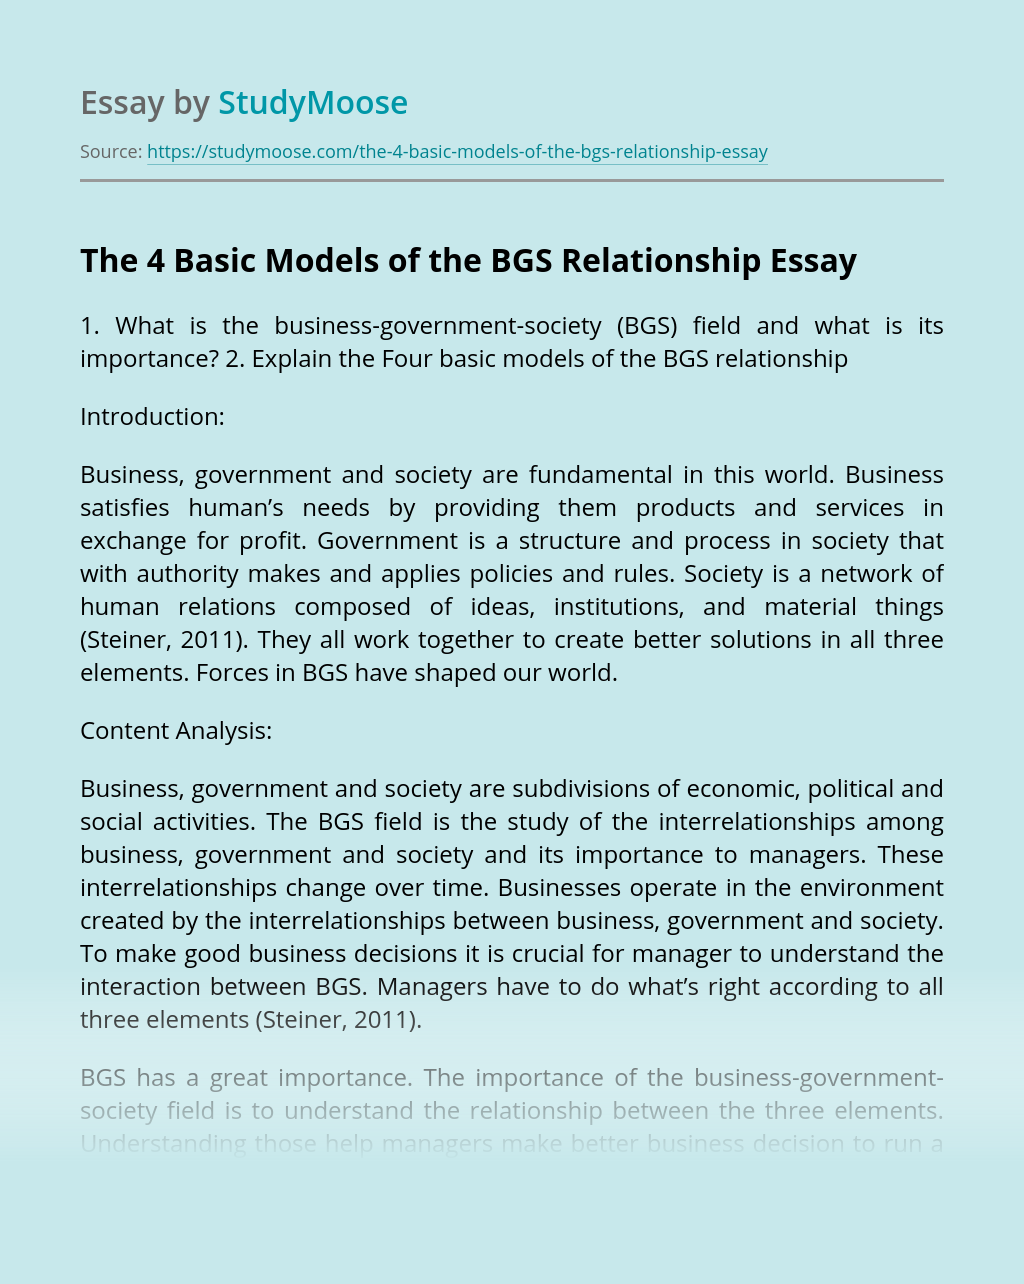 The 4 Basic Models of the BGS Relationship